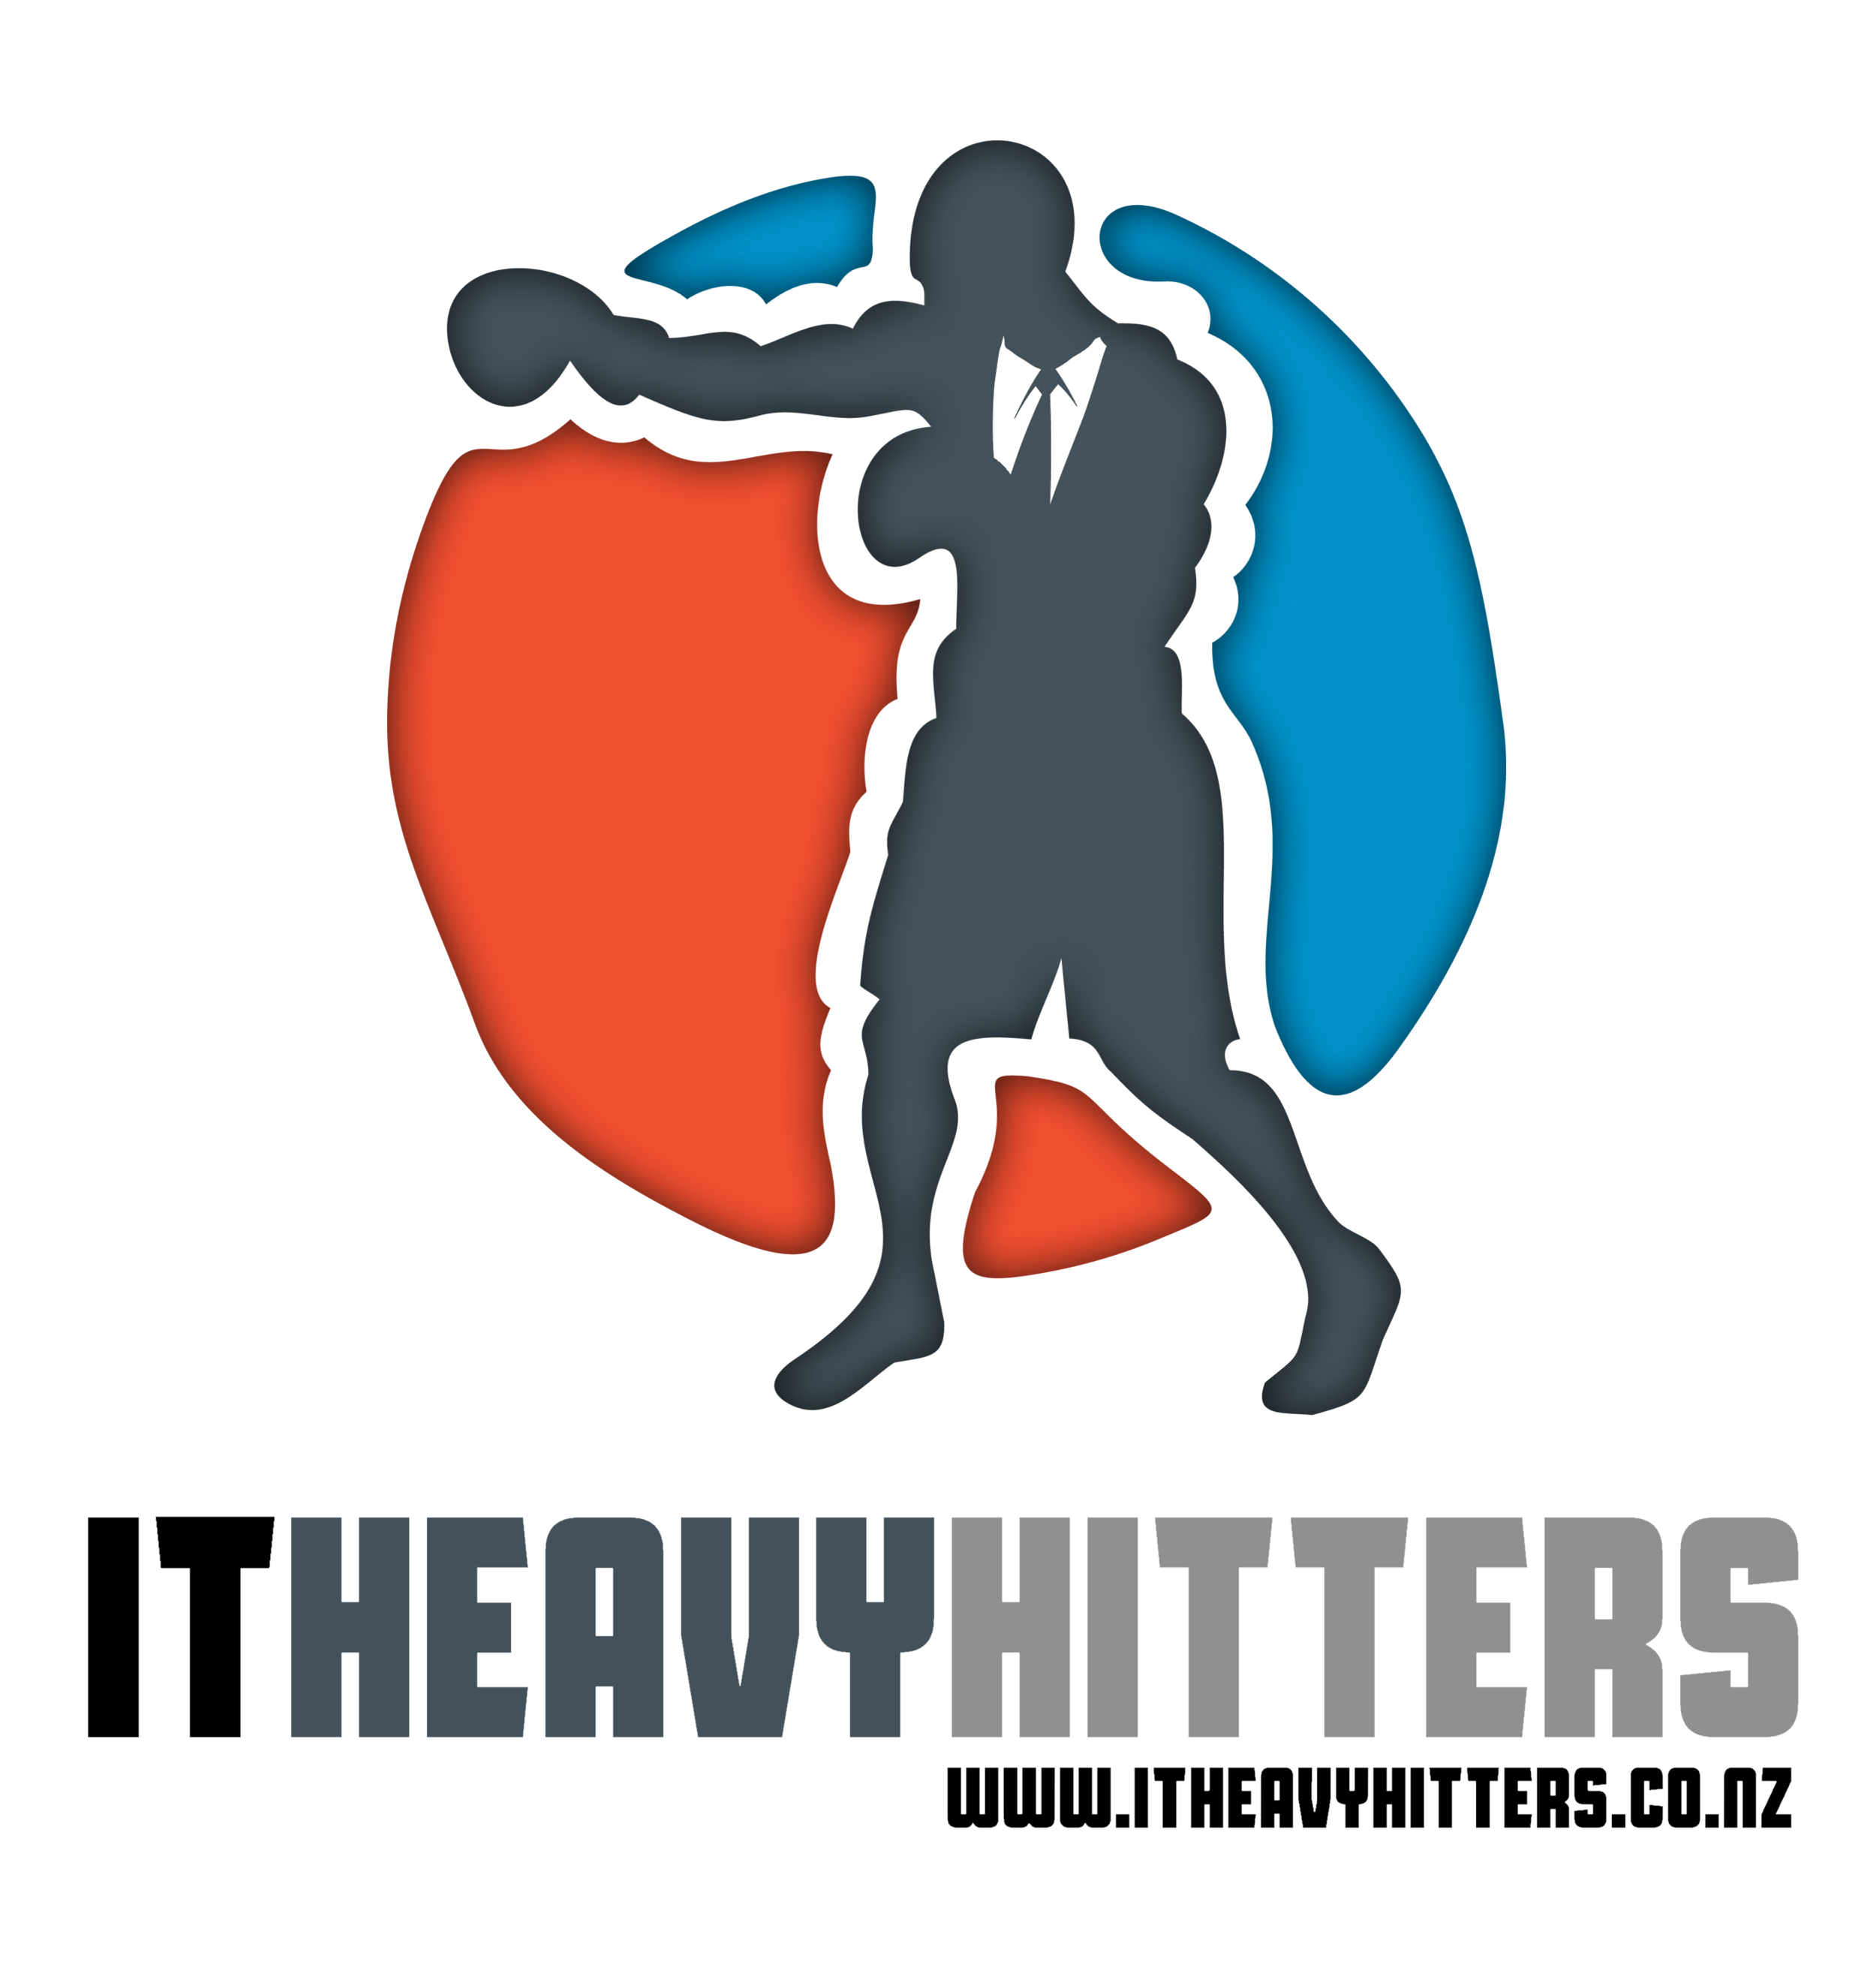 itheavyhitters_logo_withtxt_flat.png